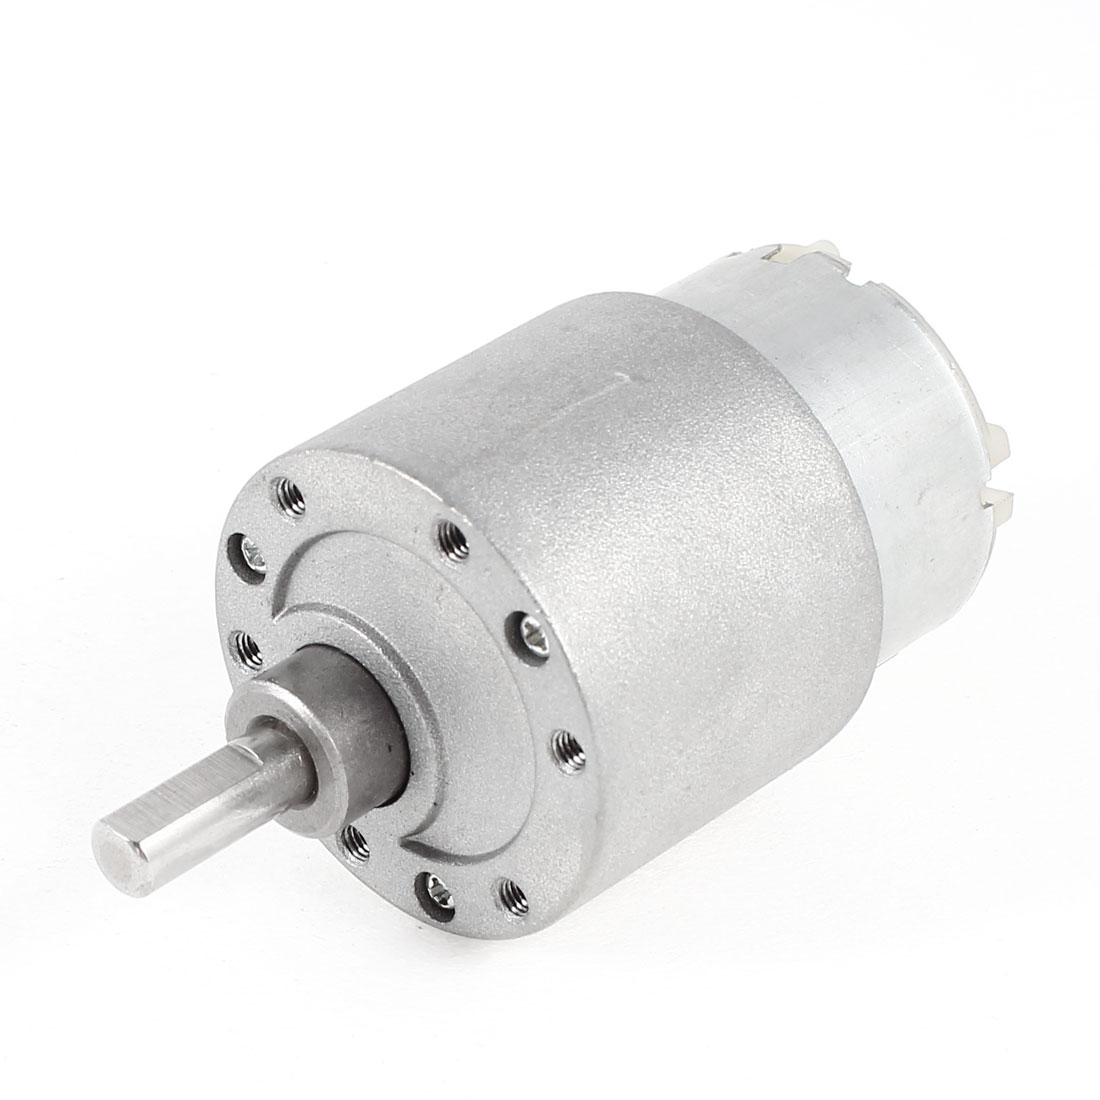 DC 12V 17RPM 6mm Dia Shaft Gear Box Speed Reduction Motor for Intelligent Robot